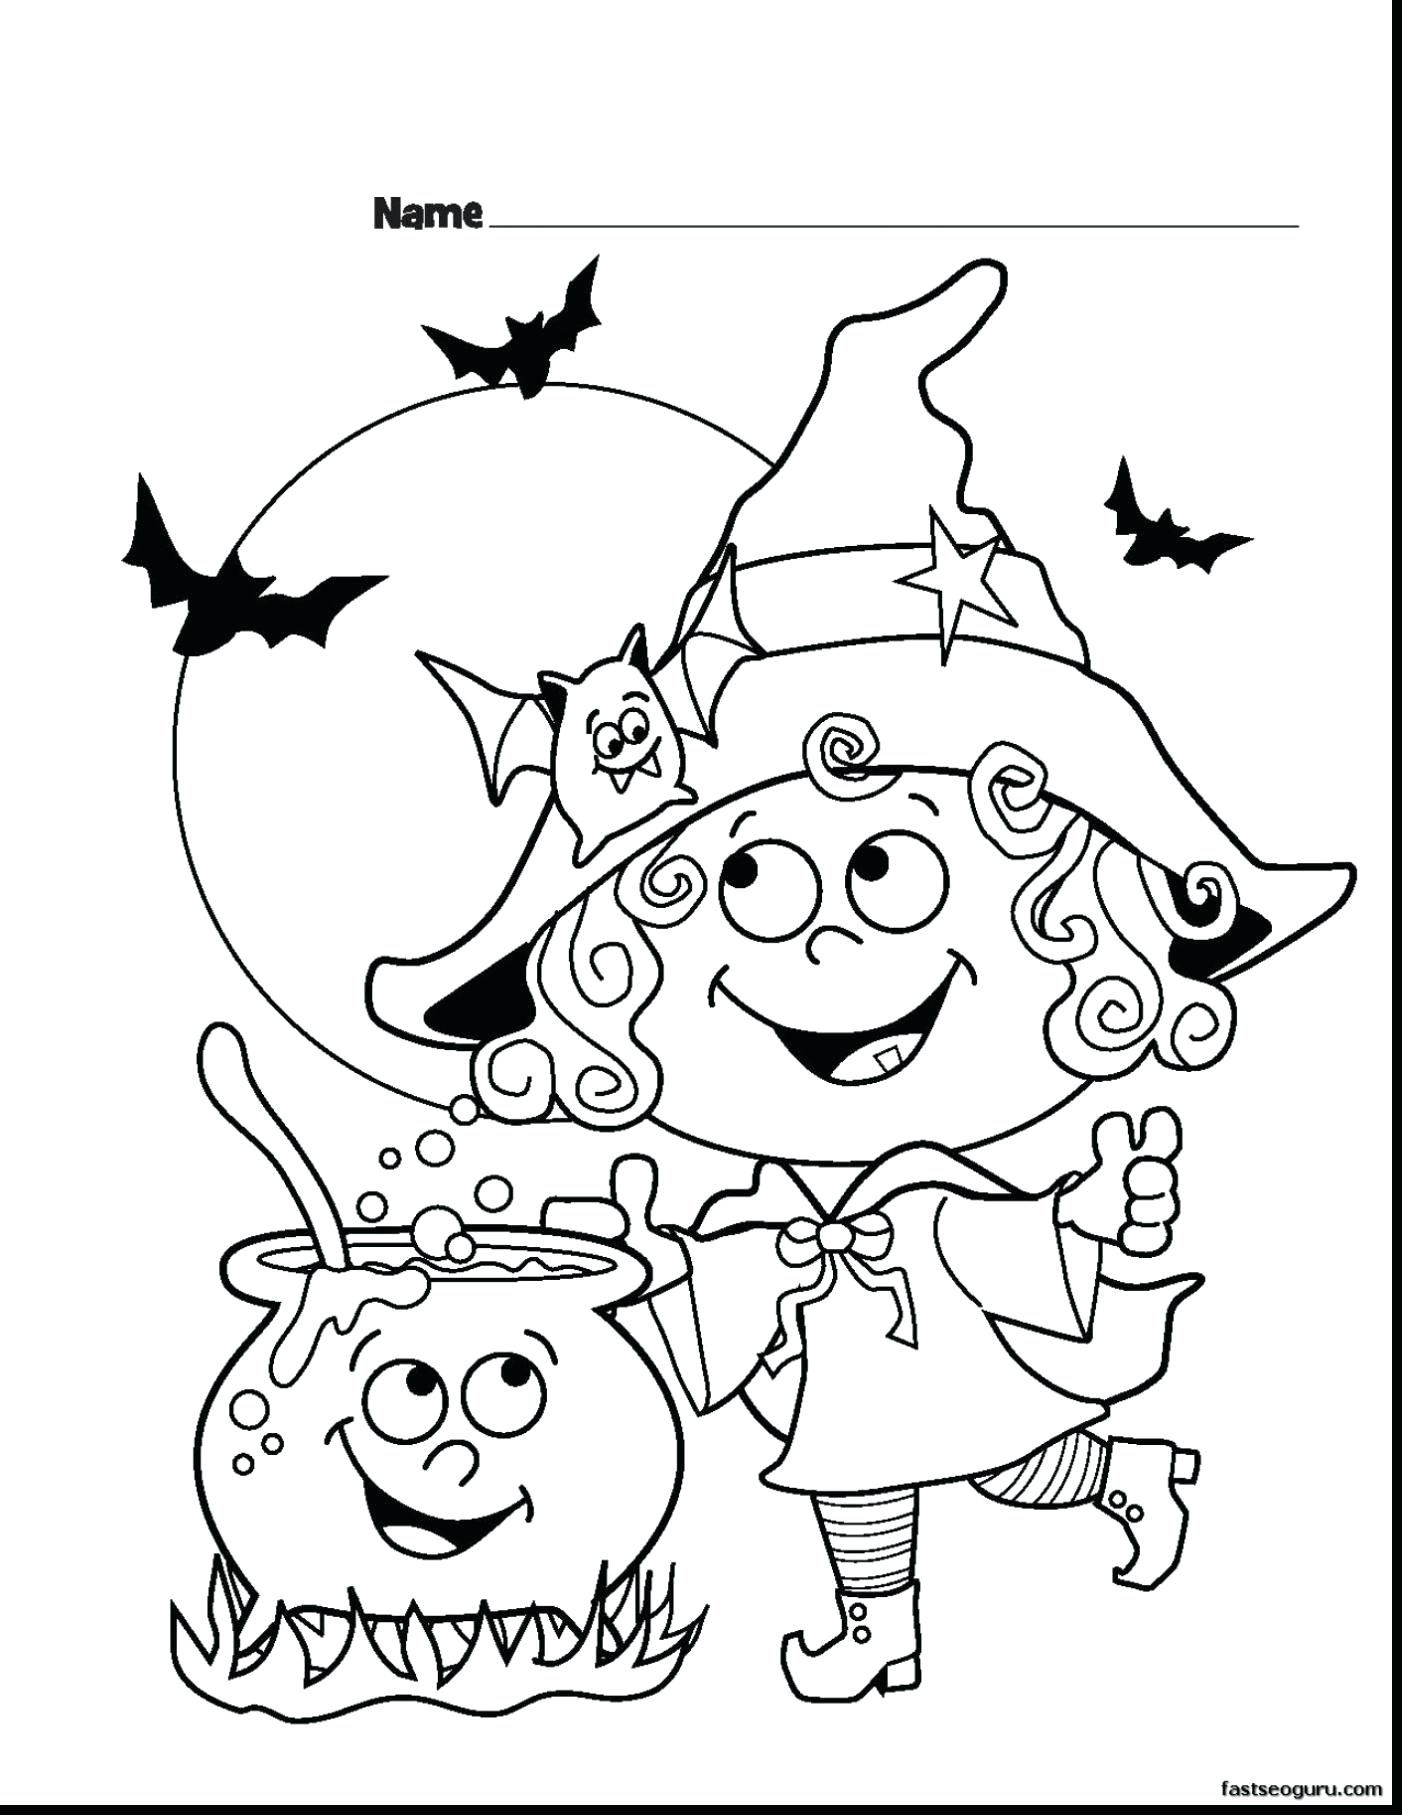 Free Printable Halloween Coloring Pages For Preschoolers With Toddlers Witch O Halloween Coloring Sheets Halloween Coloring Pages Free Halloween Coloring Pages